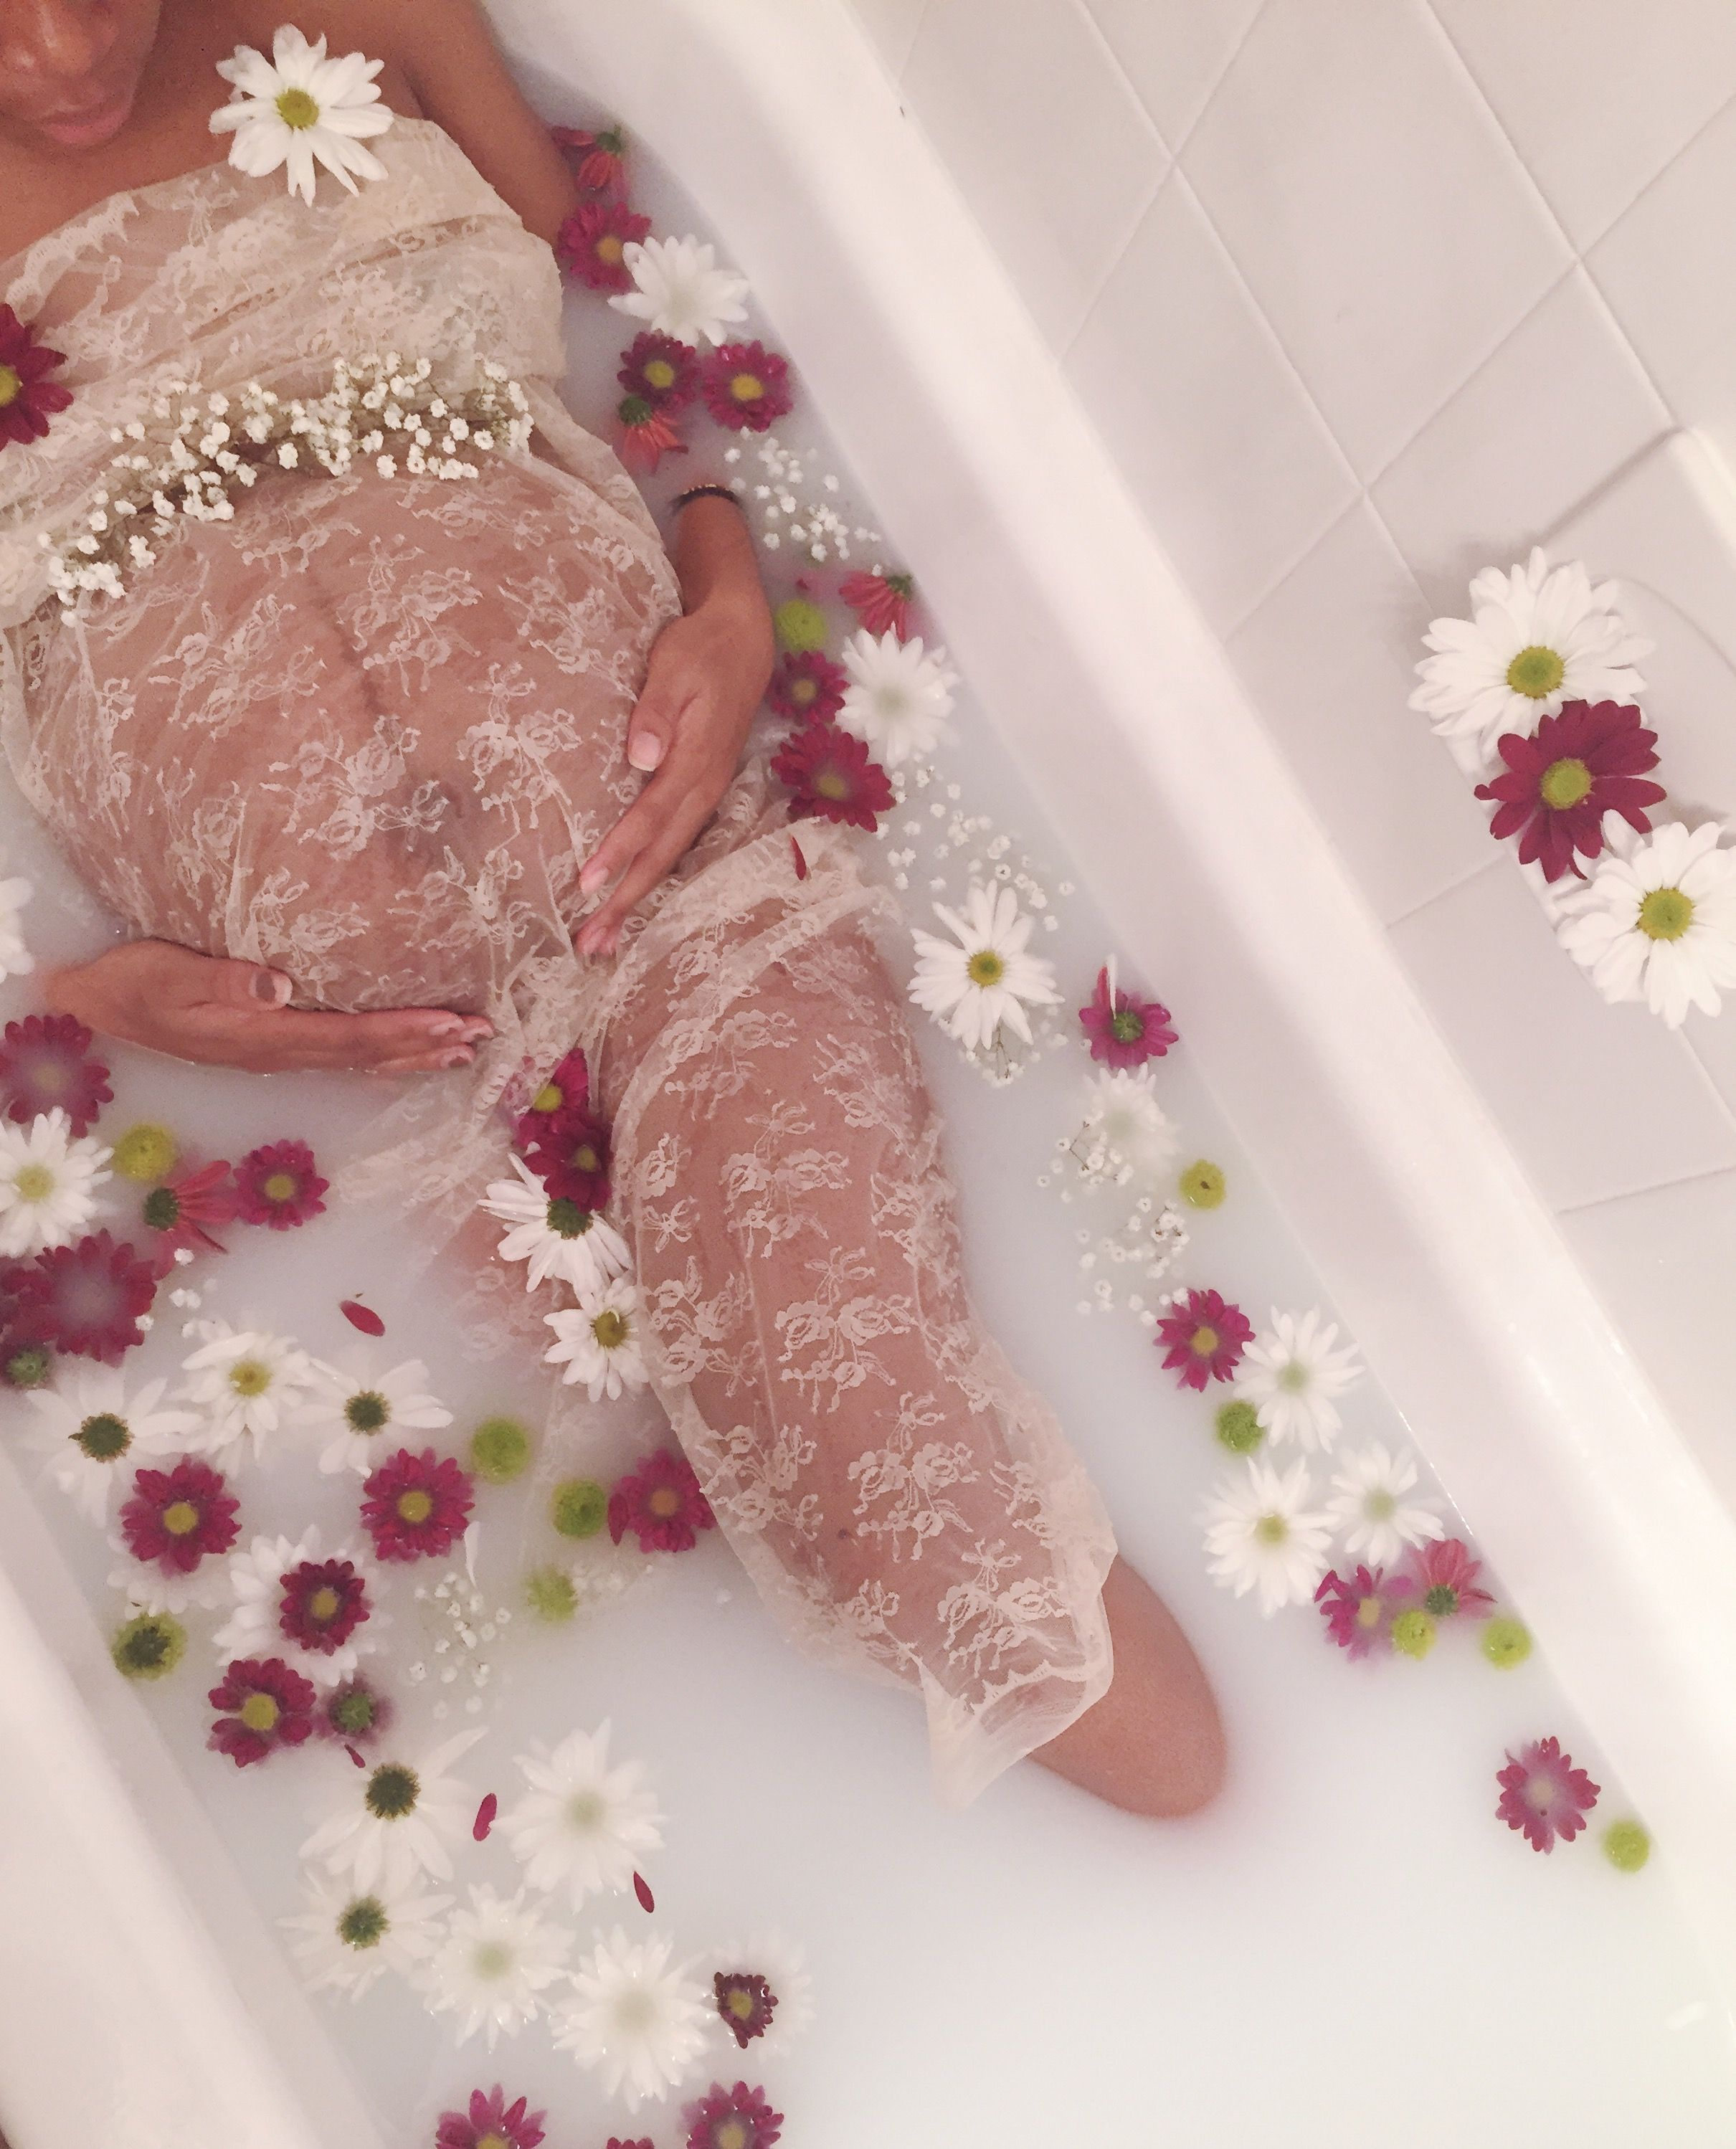 DIY milk bath maternity shoot! So surprisingly easy and fun....just fill up the tub with hot water, add powdered non-dairy coffee creamer, and finish off with real flowers from your local grocery store! (Fake flowers don't float) Mama pictured bought approx. 5 ft of lace and tulle fabric to cover herself up. #maternityshoot #maternityphotography #milkbath #fallmilkbath DIY milk bath maternity shoot! So surprisingly easy and fun....just fill up the tub with hot water, add powdered non-dairy coffe #fallmilkbath